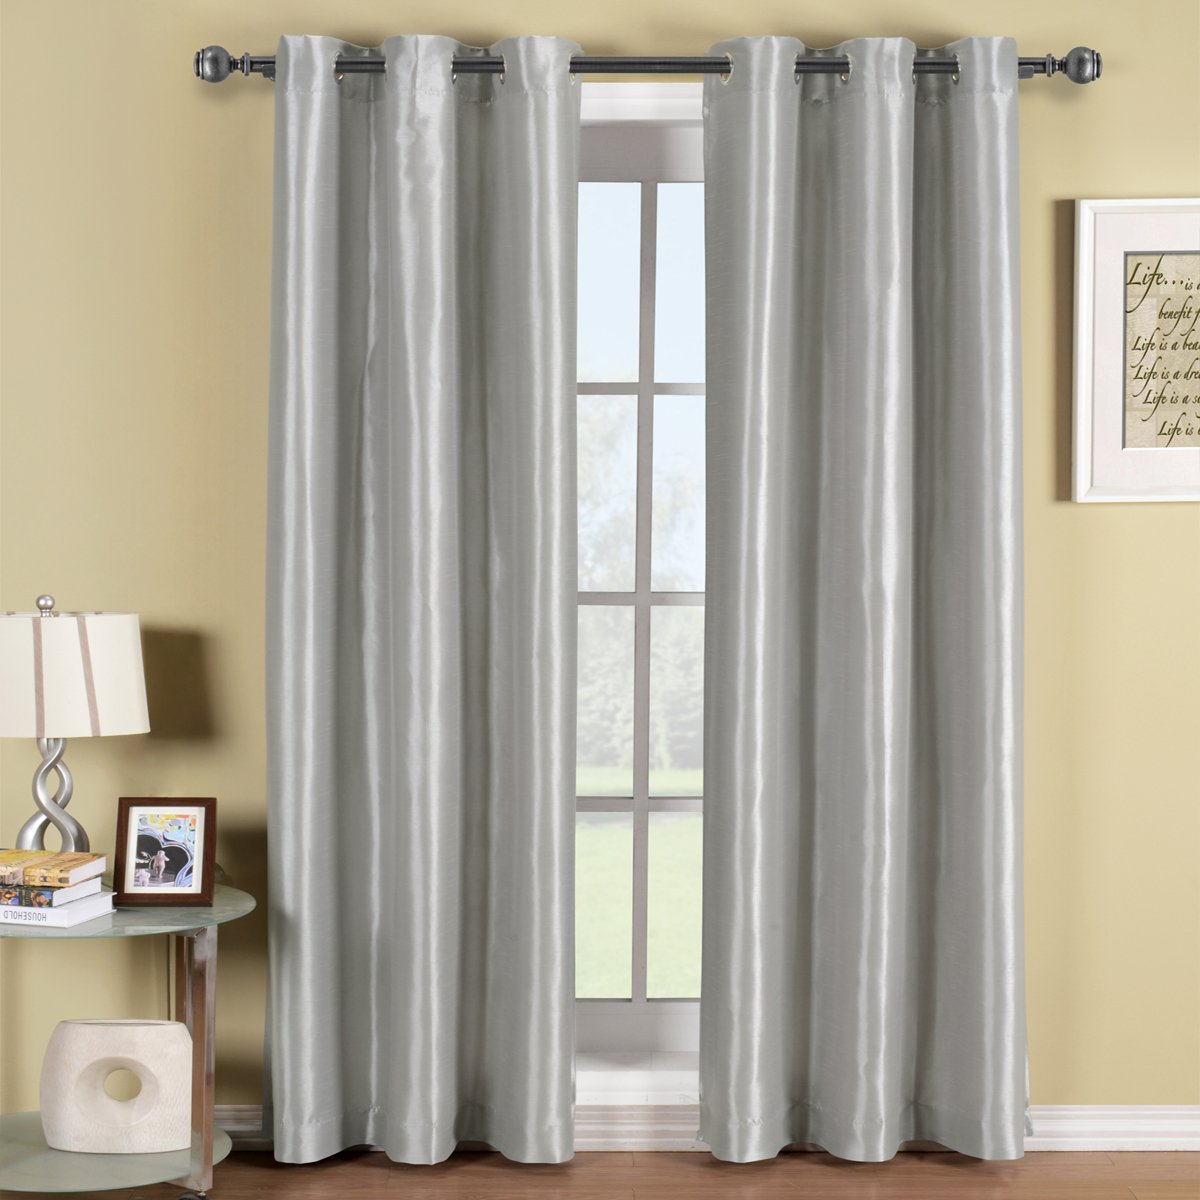 Soho Gray-Silver Grommet Blackout Window Curtain Panel, Solid Pattern, 42x84 inches, by Royal Hotel